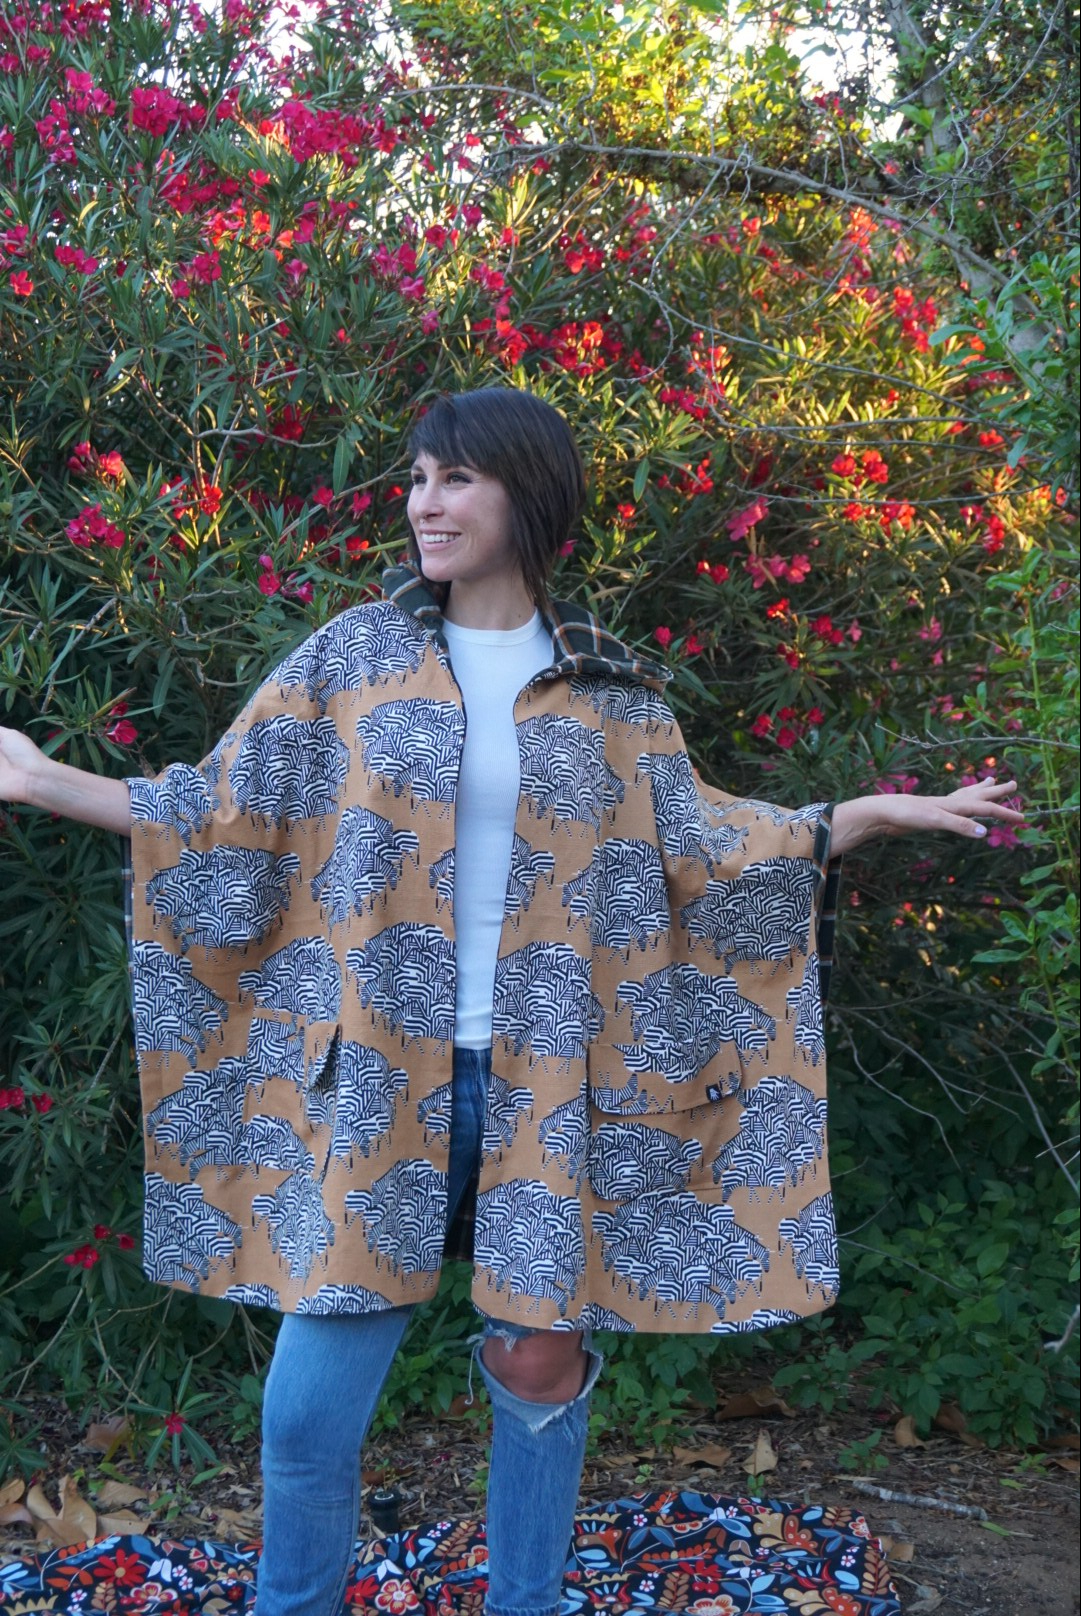 Mary stands in front of a wall of greenery and flowers. She extends her hands out to her sides to show the shape of her hooded poncho, which is goldenrod yellow with clusters of zebras placed throughout.